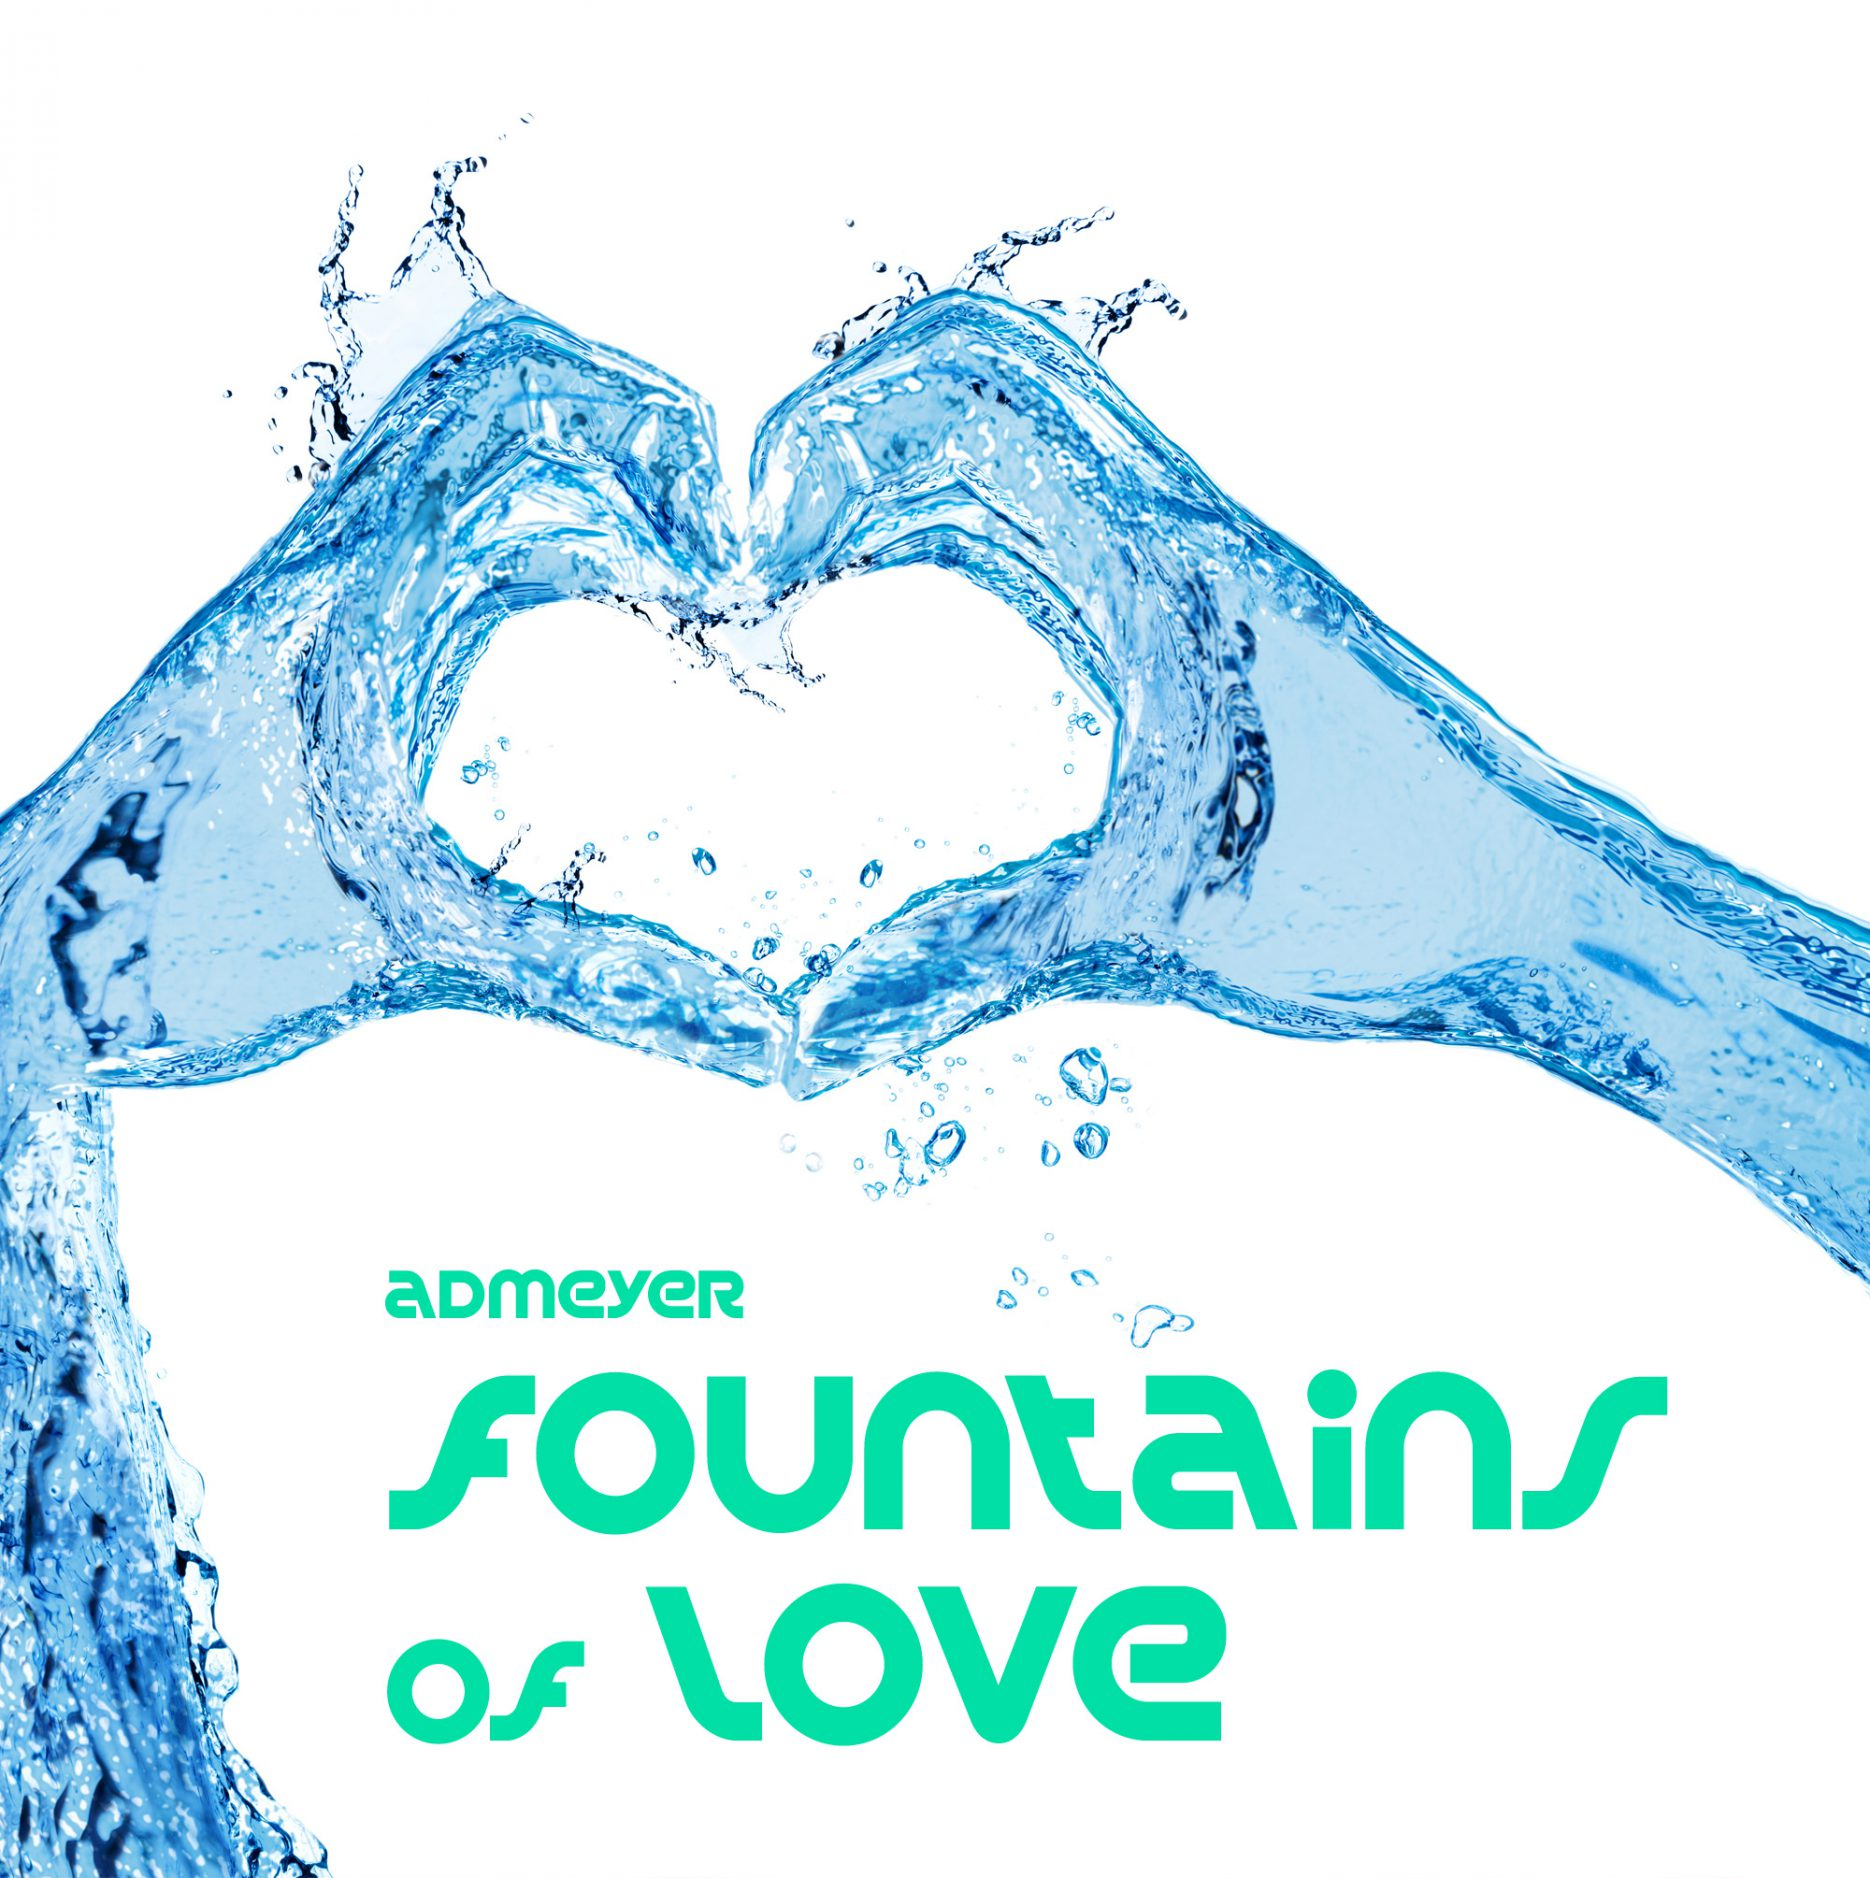 Lovesong fountains of love